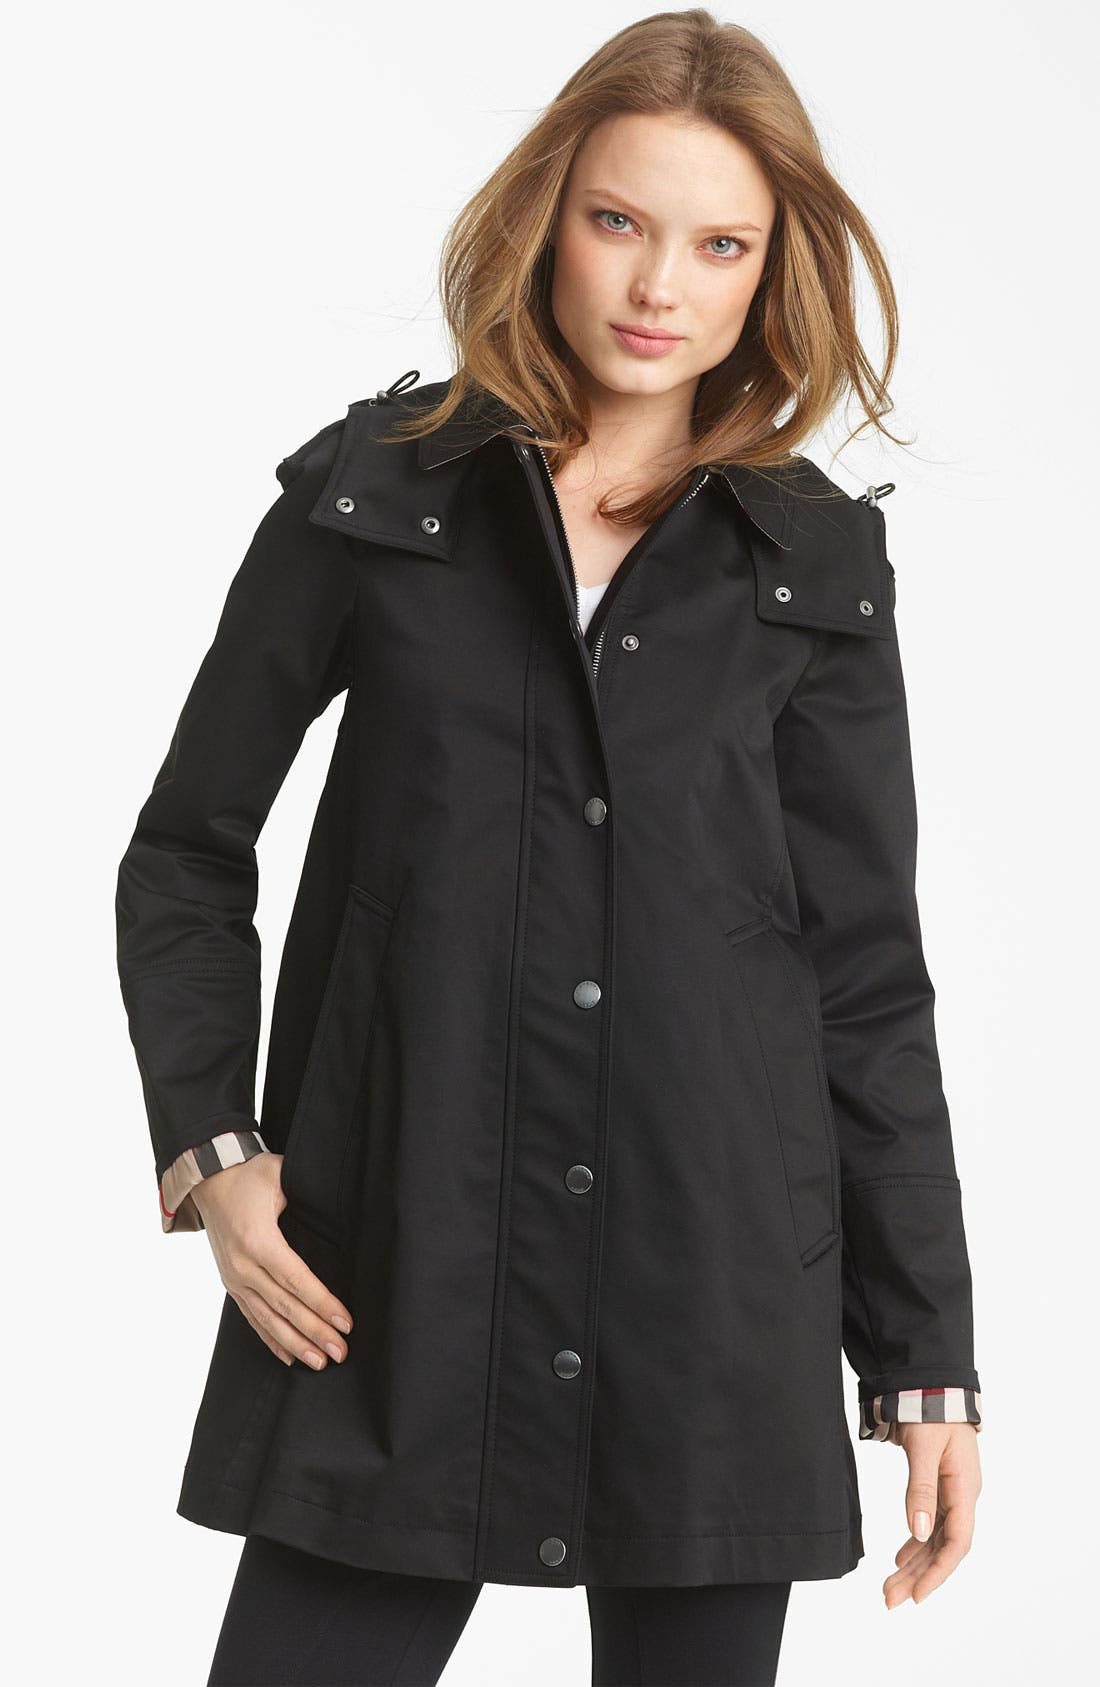 'Bowpark' Raincoat with Liner,                         Main,                         color, 001